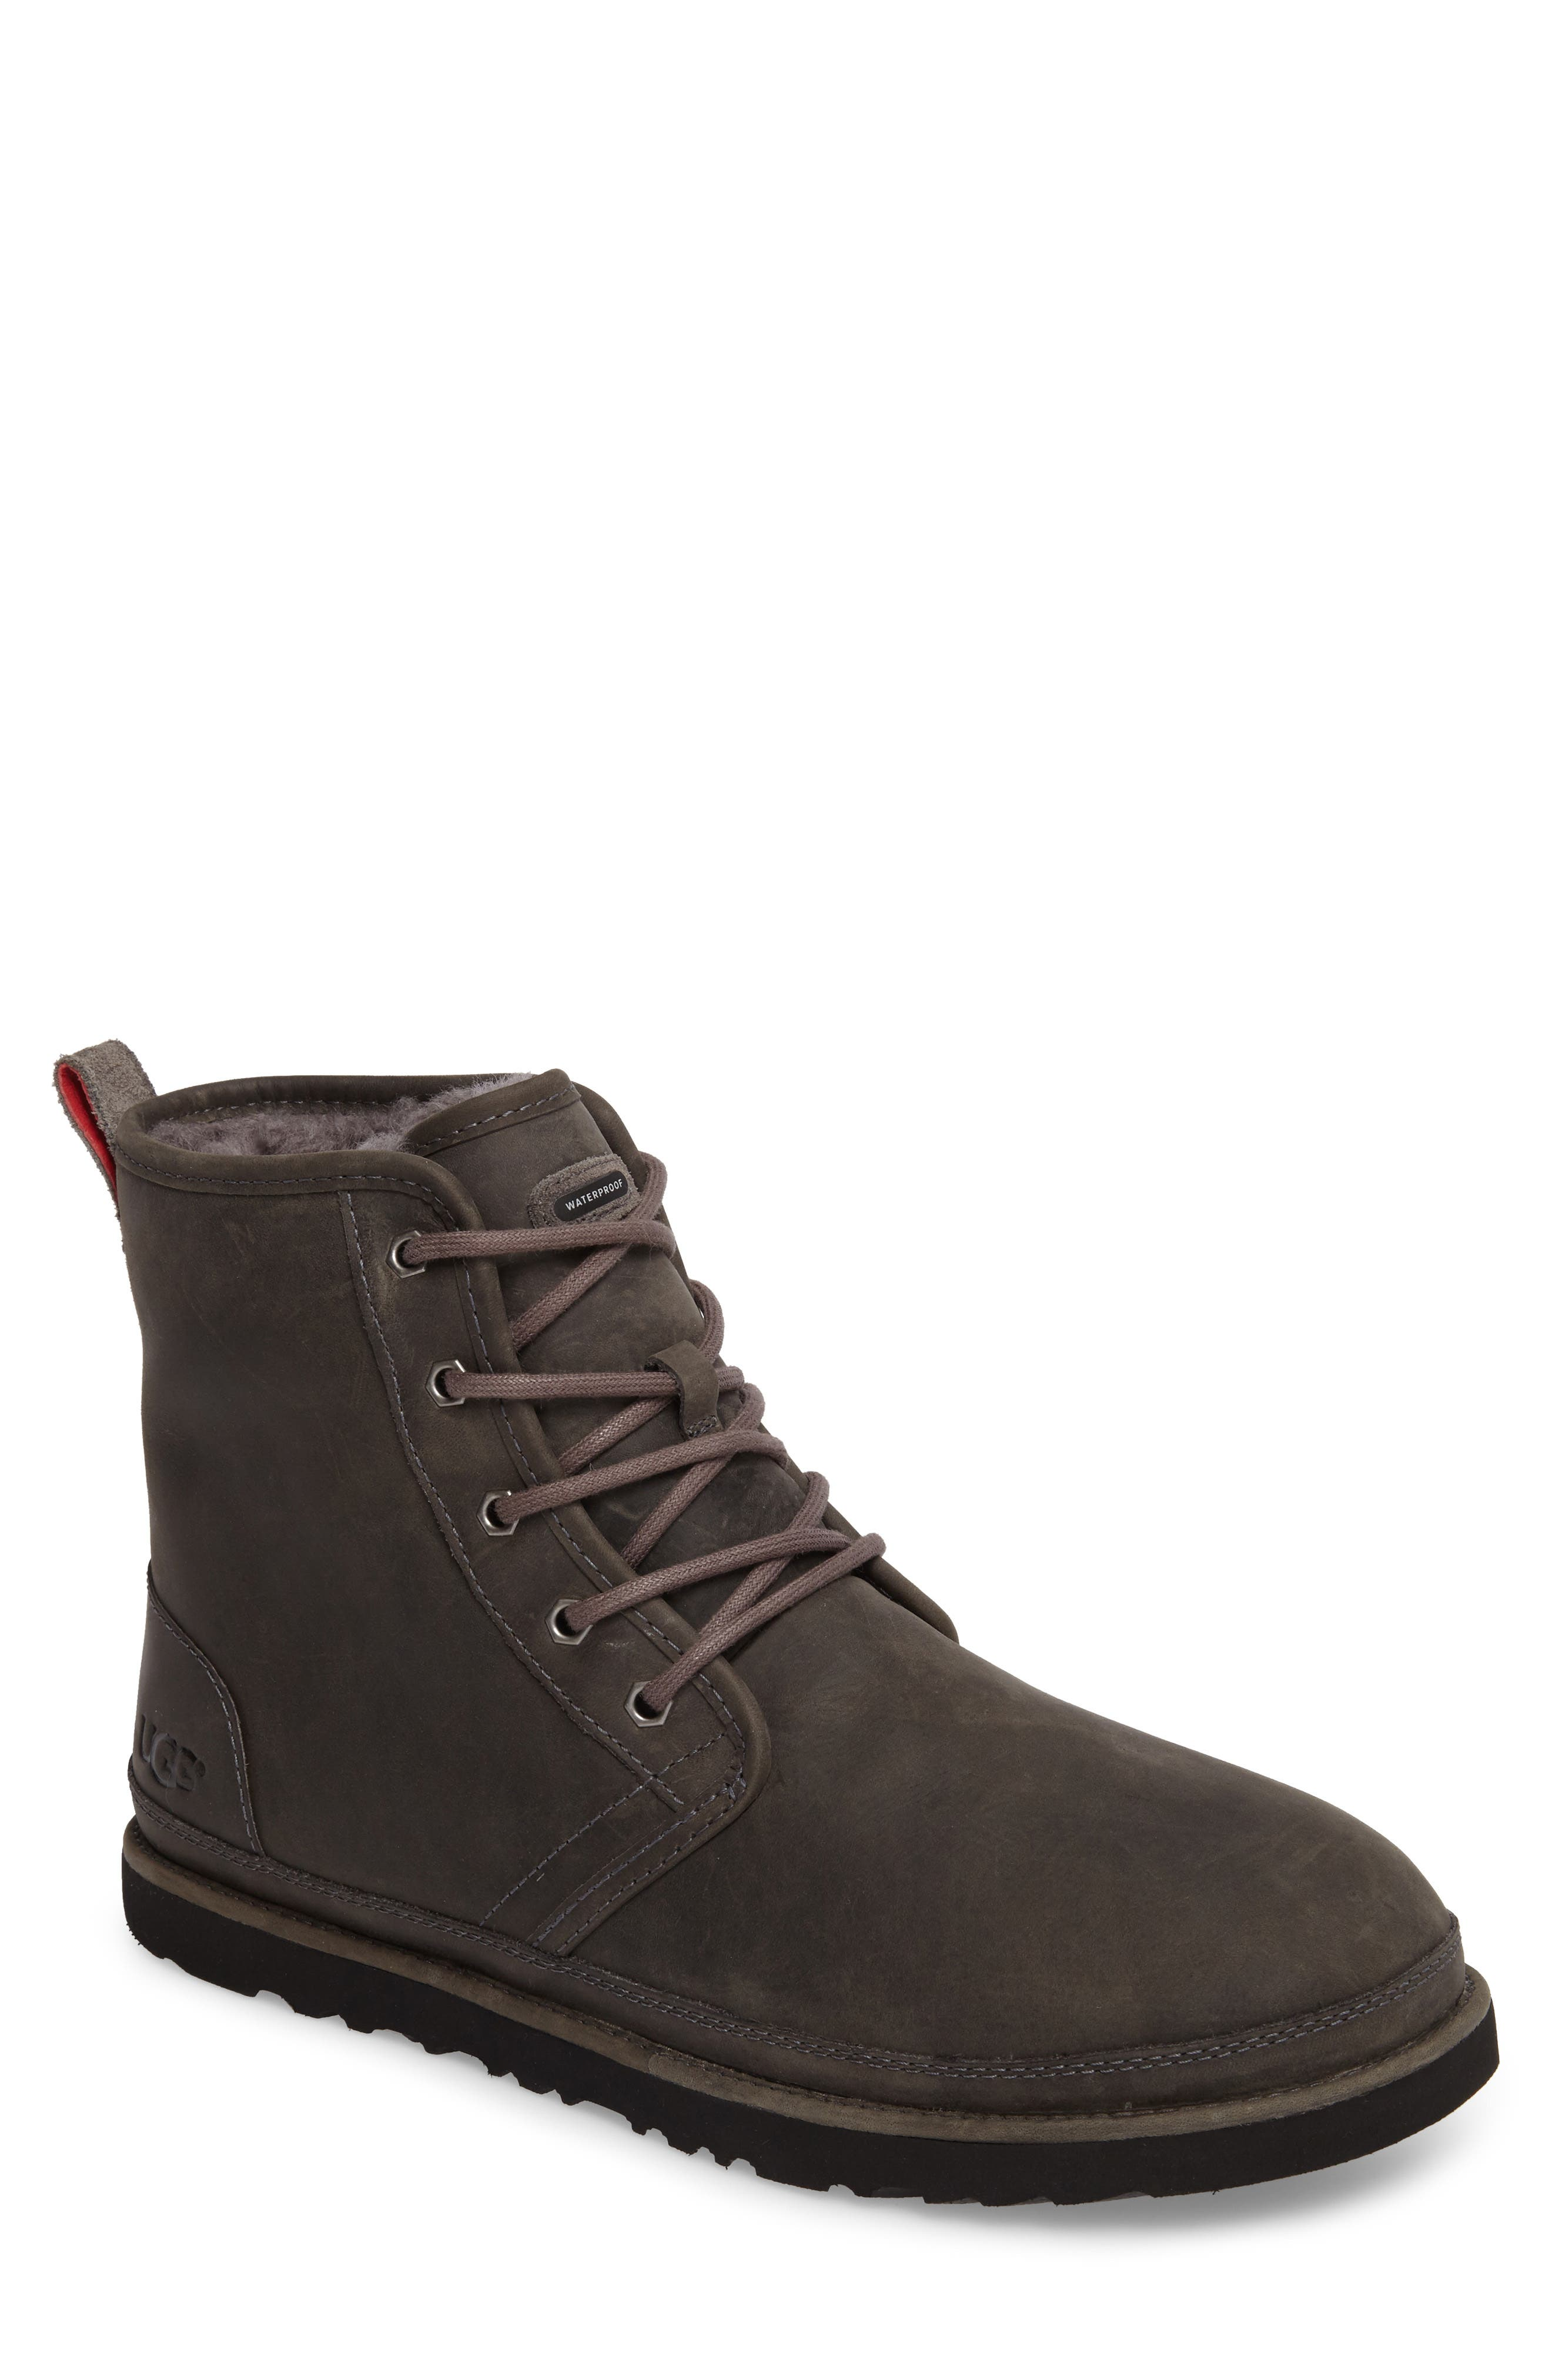 Harkley Plain Toe Boot,                             Main thumbnail 1, color,                             Charcoal